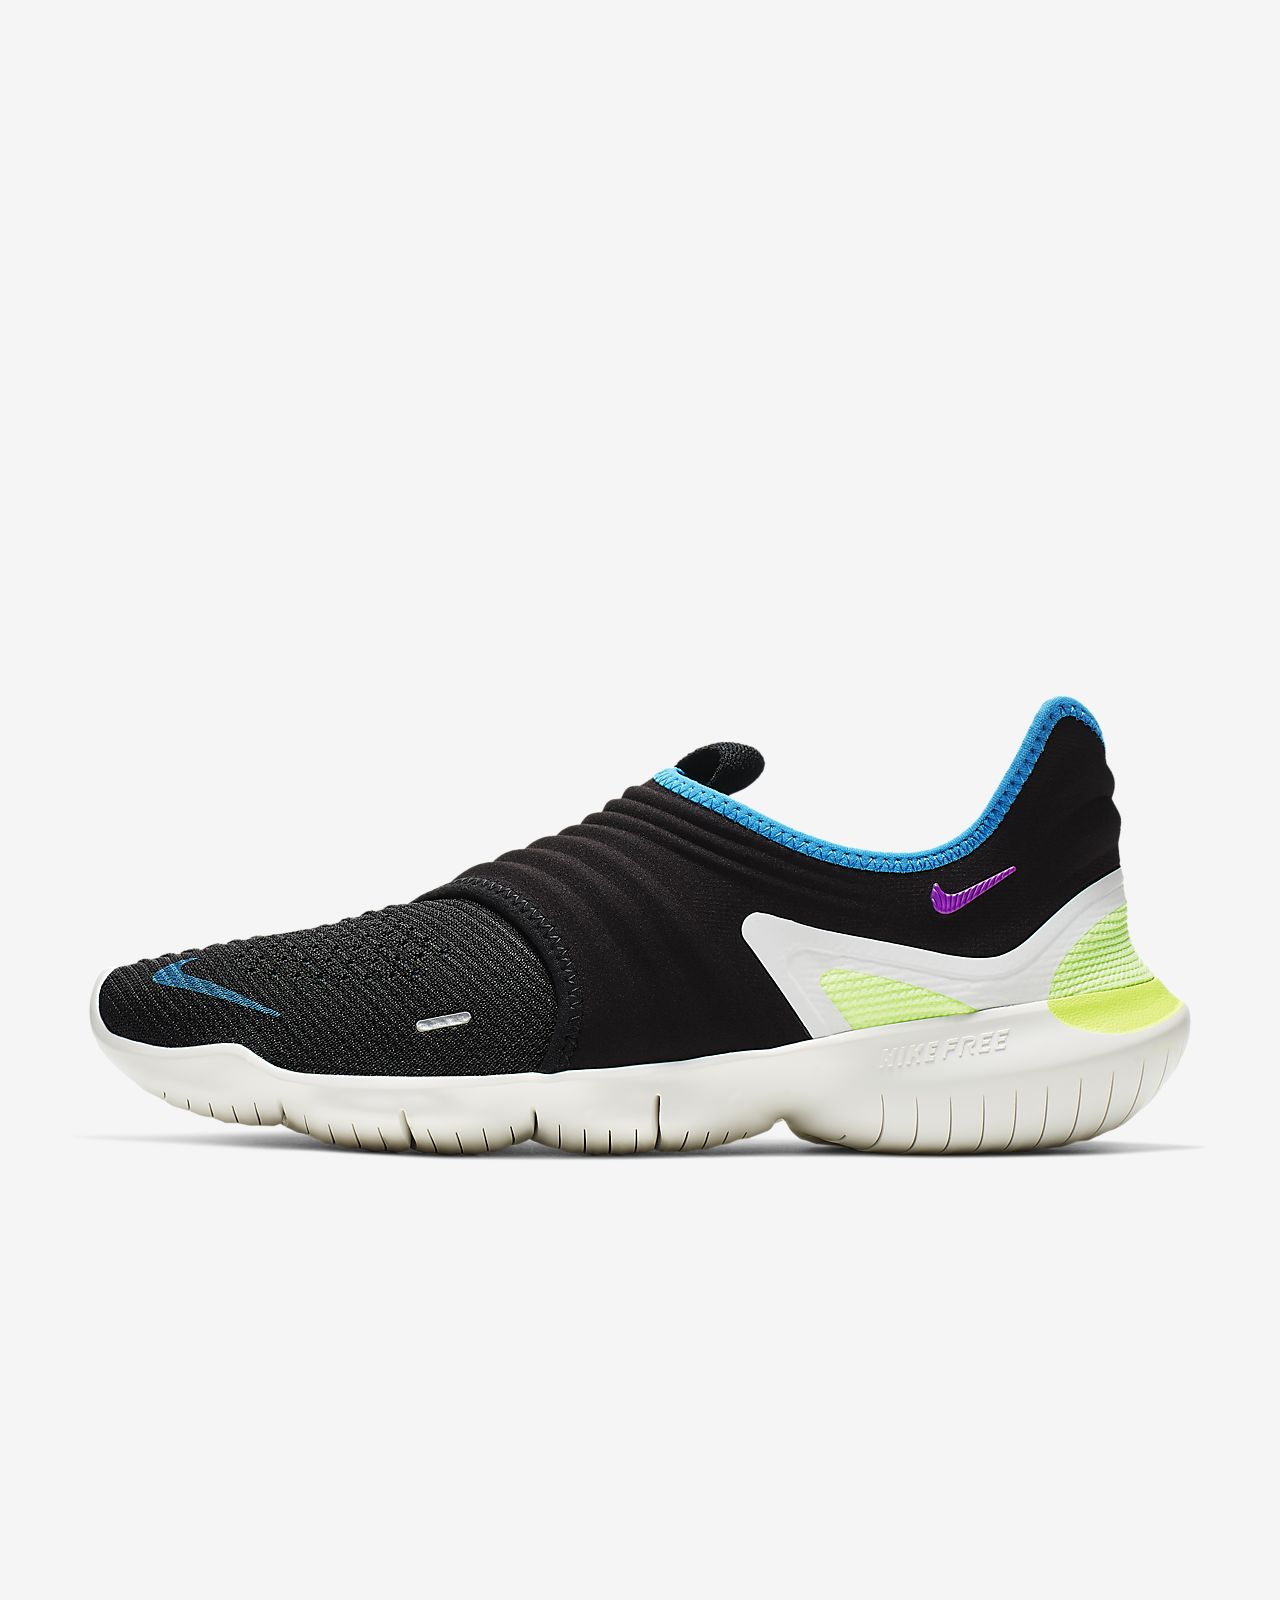 uk availability 0f4d7 7c935 ... Chaussure de running Nike Free RN Flyknit 3.0 pour Homme